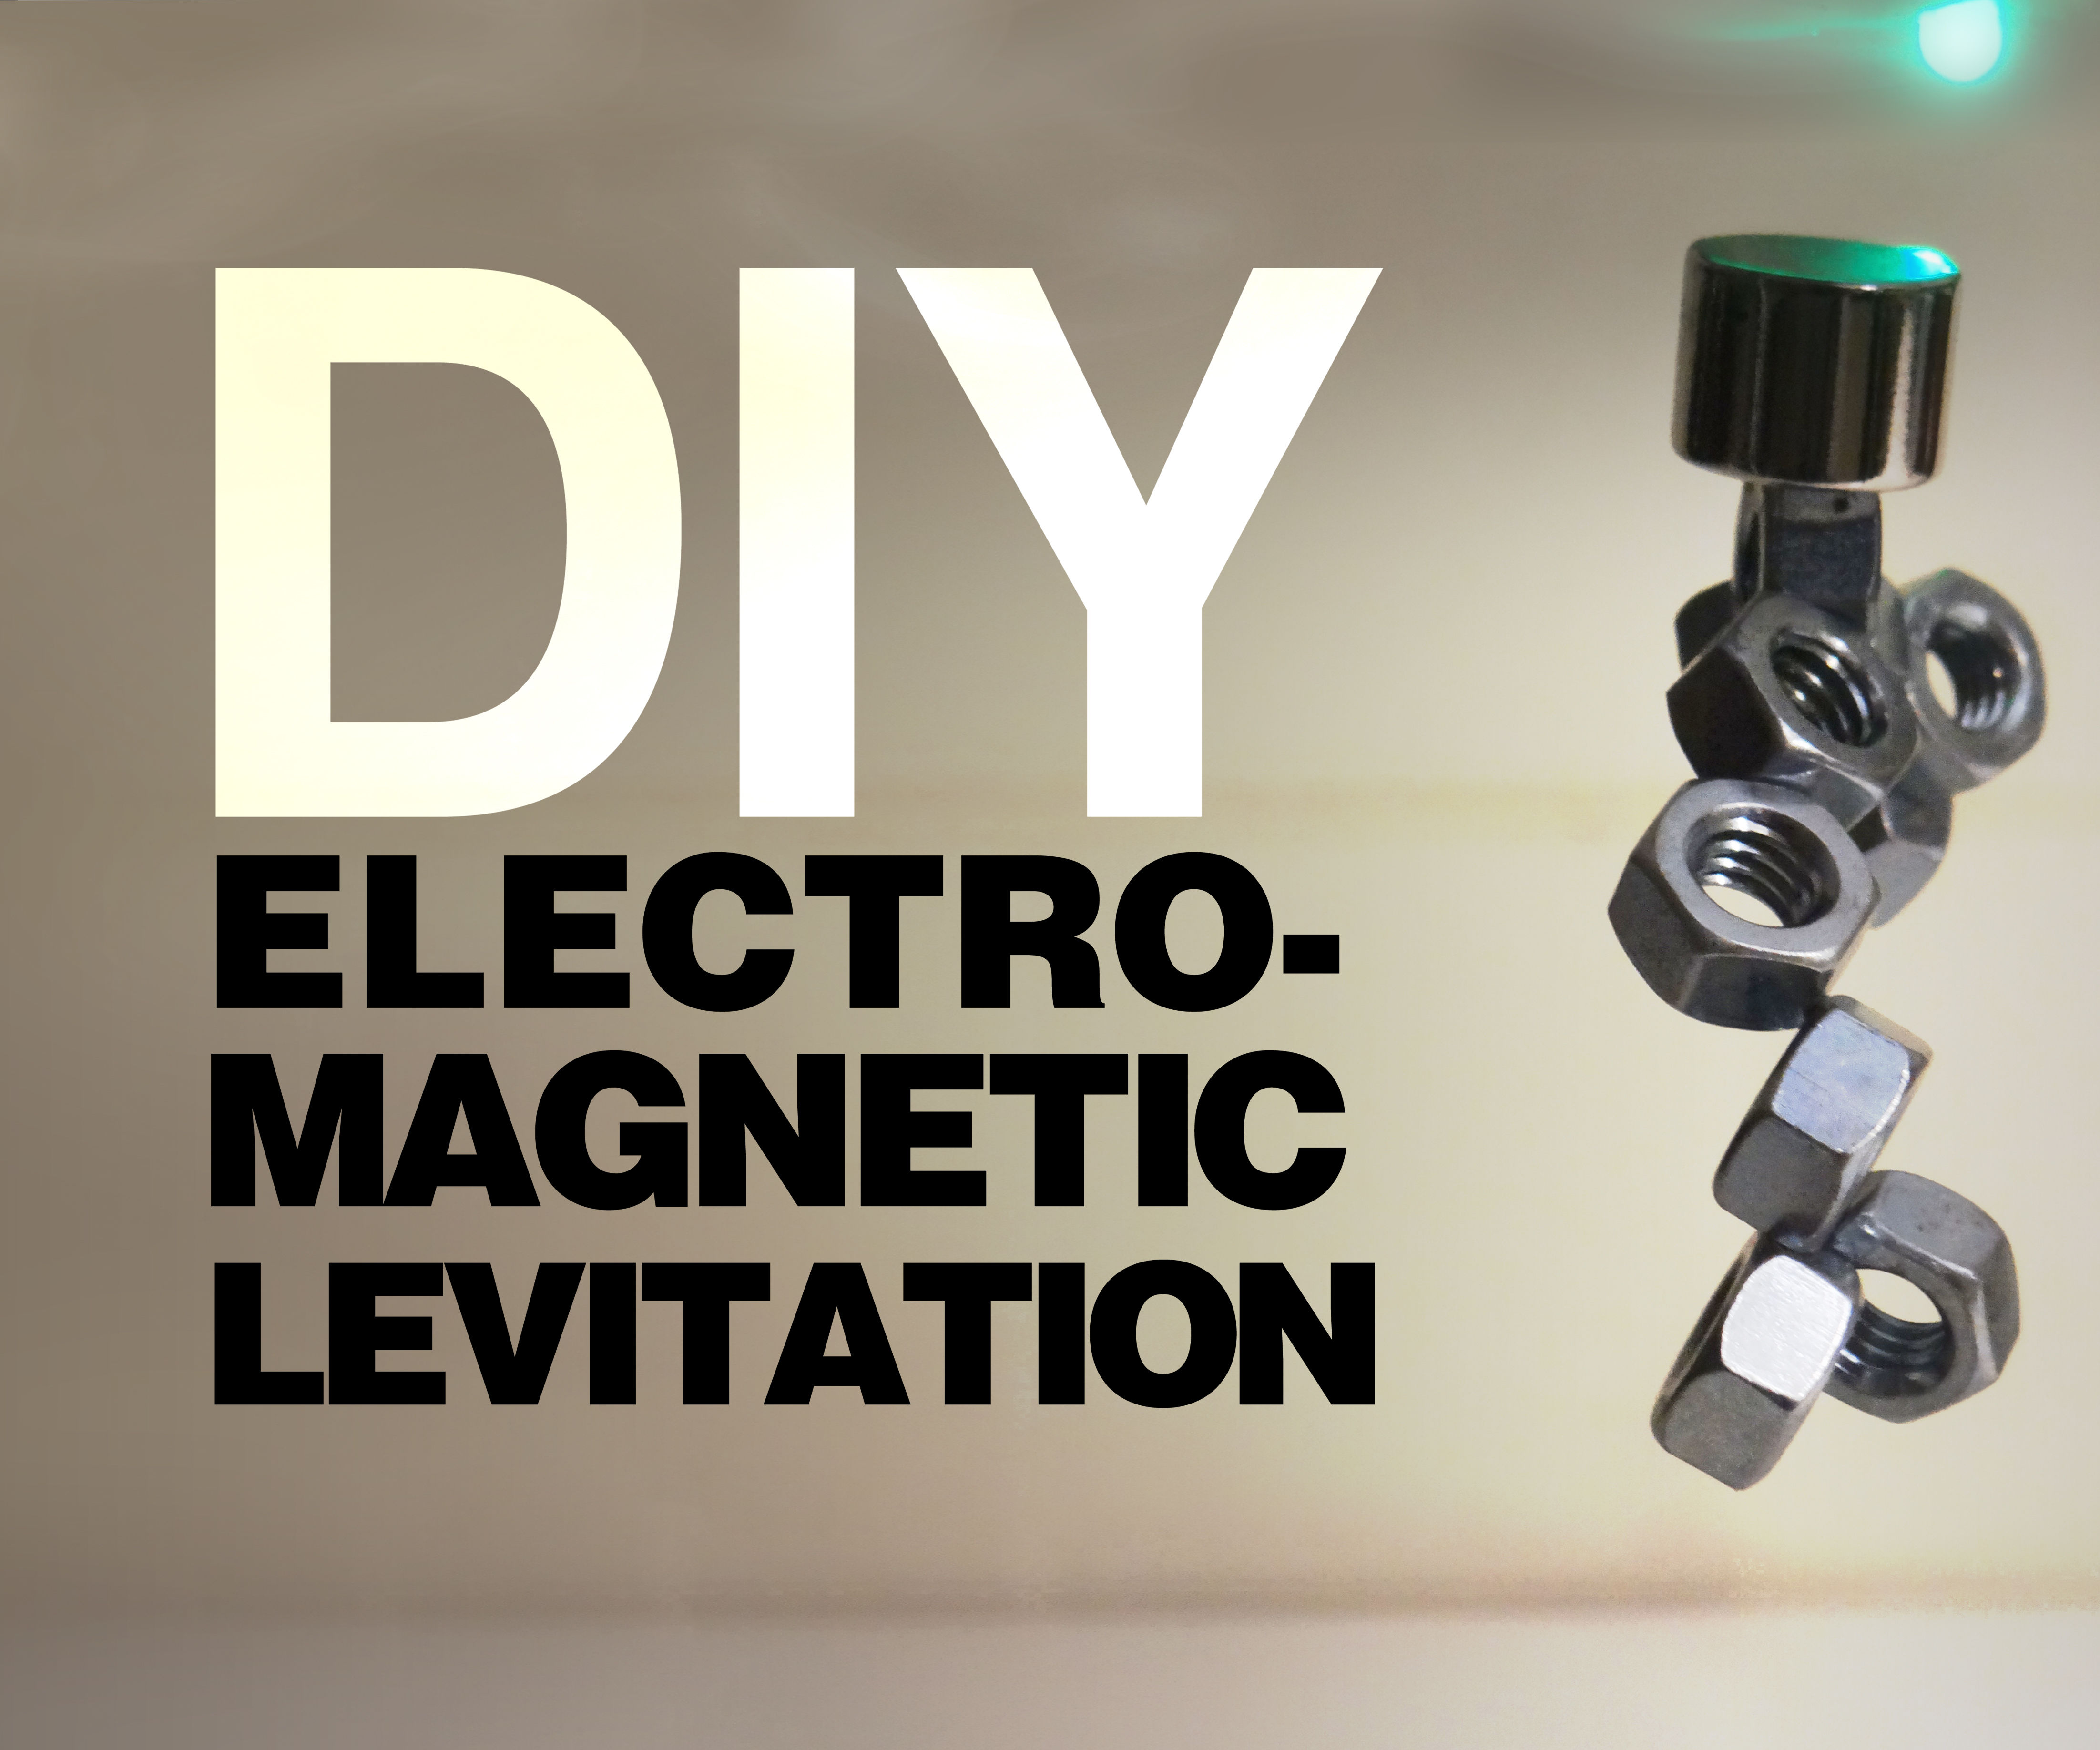 DIY Electro-Magnetic Levitation!: 6 Steps (with Pictures)